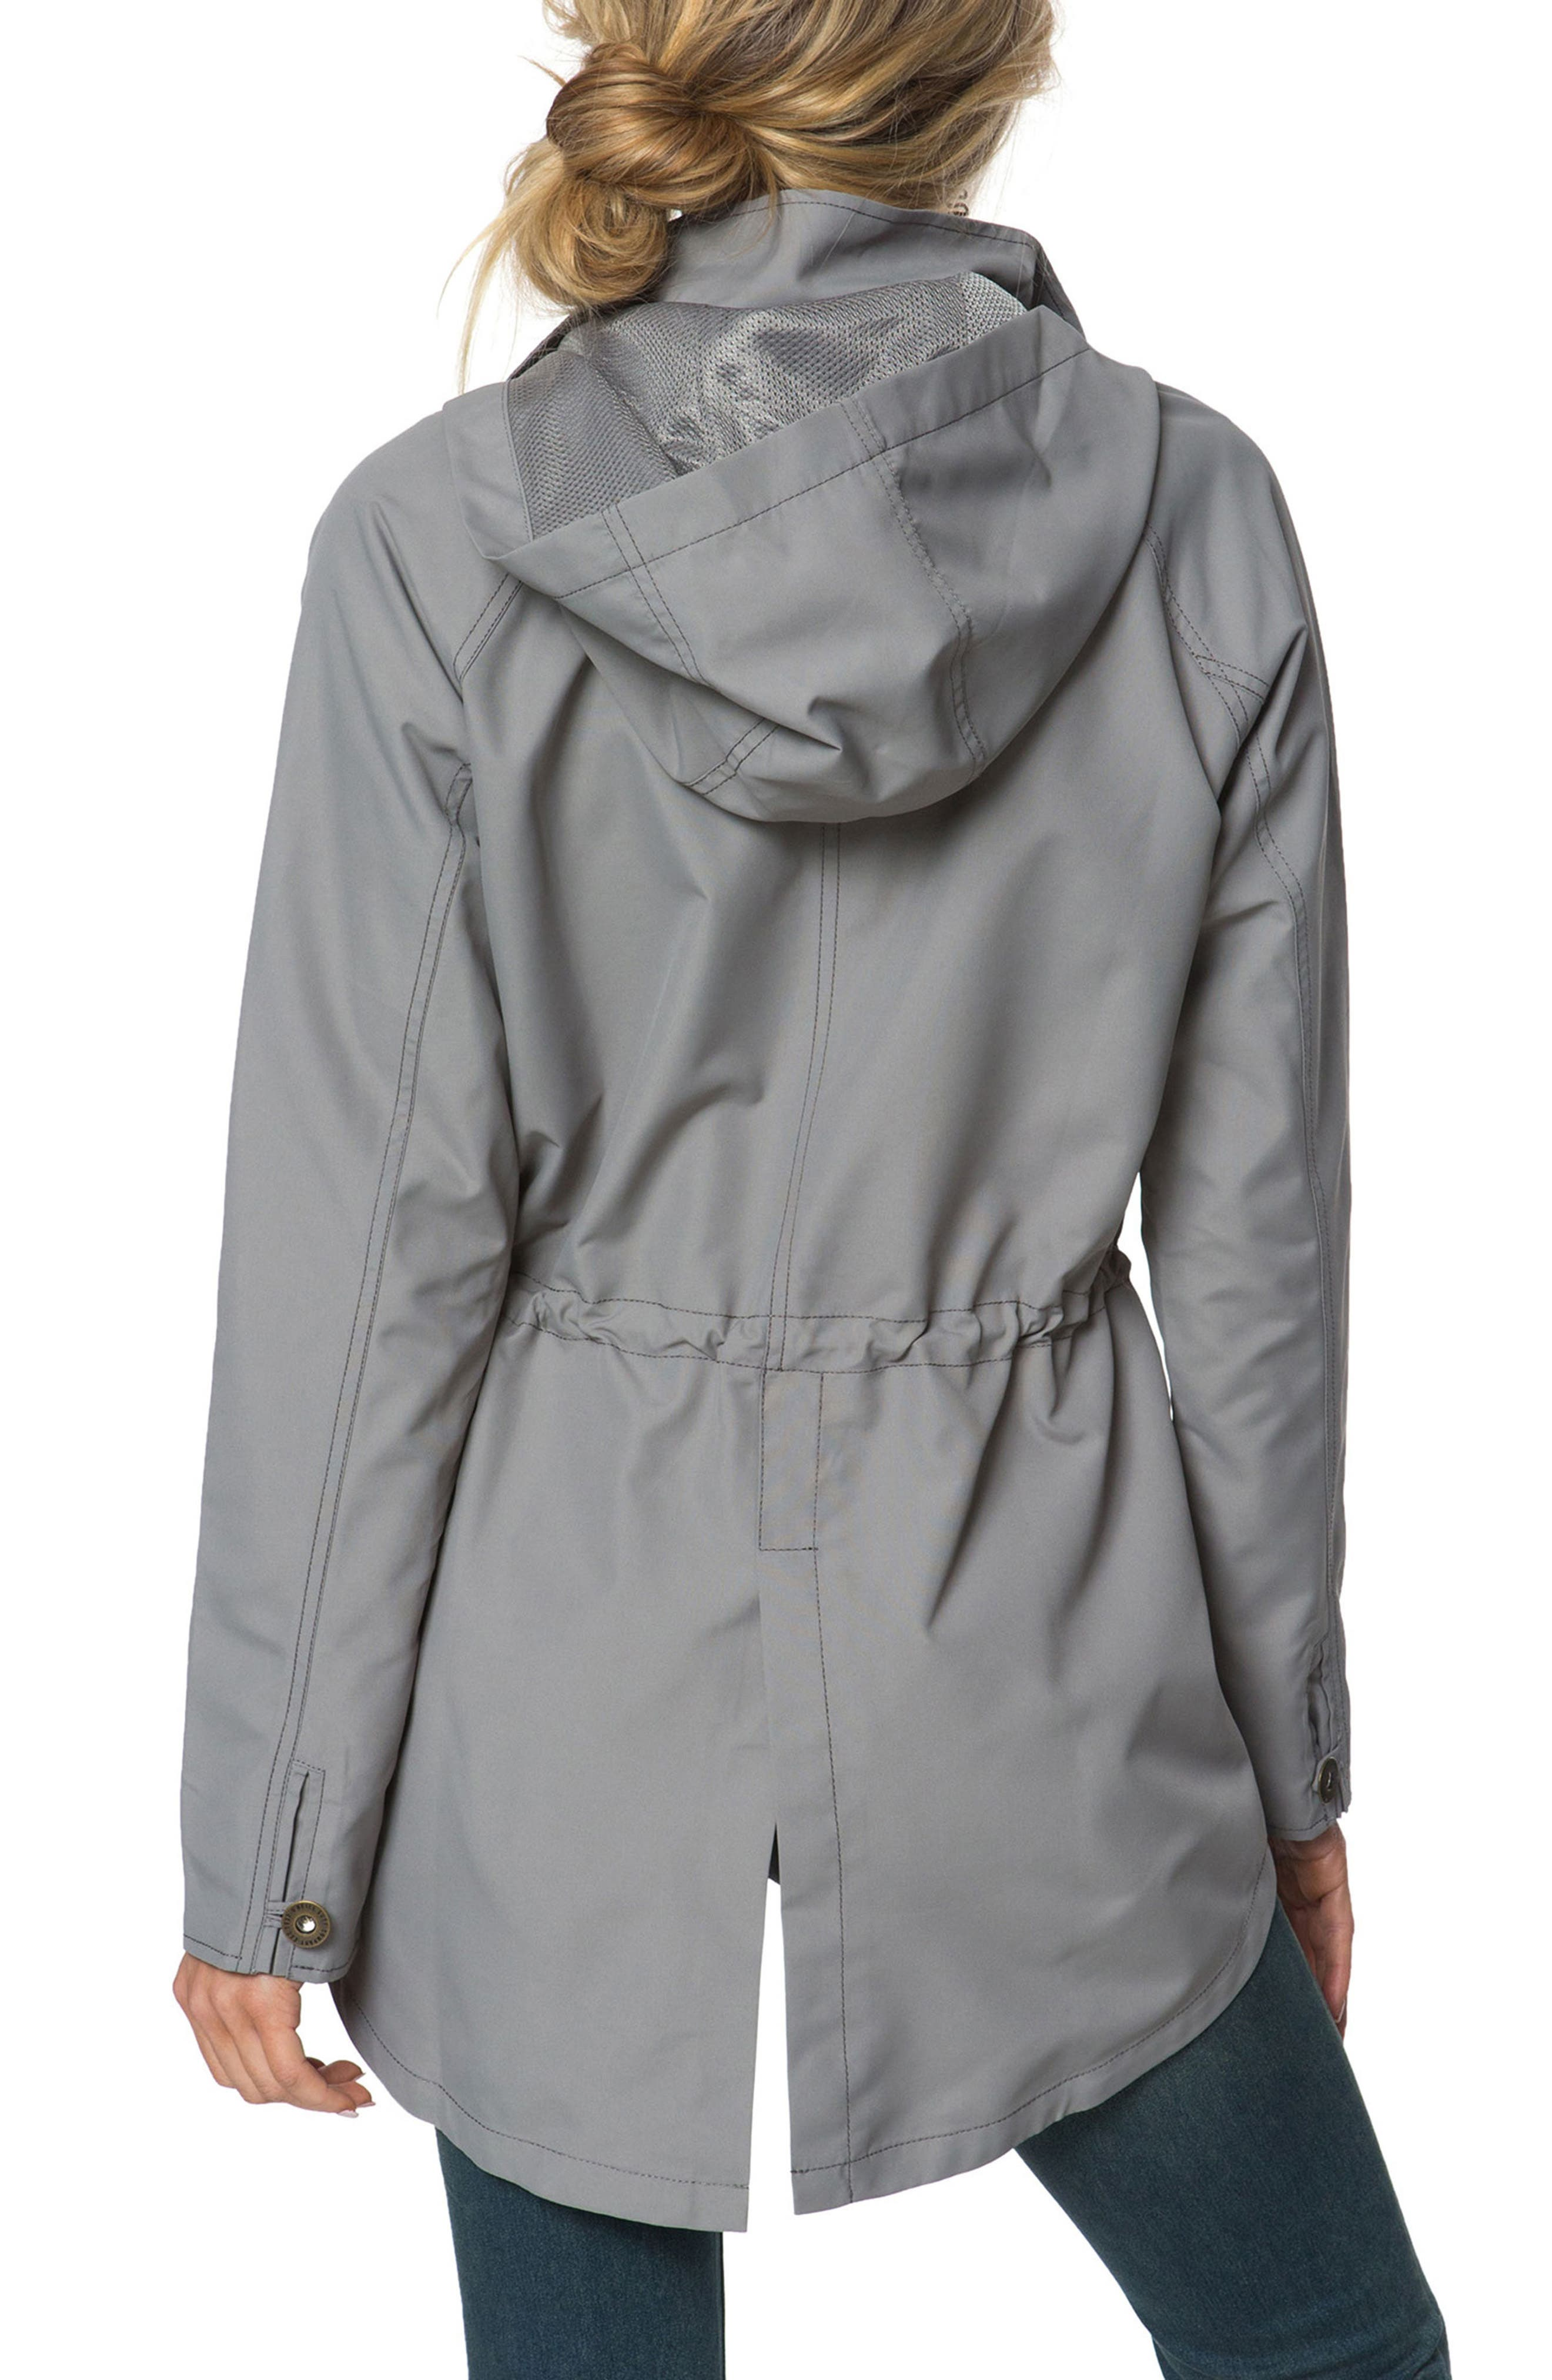 Wendy Hooded Jacket,                             Alternate thumbnail 2, color,                             Charcoal